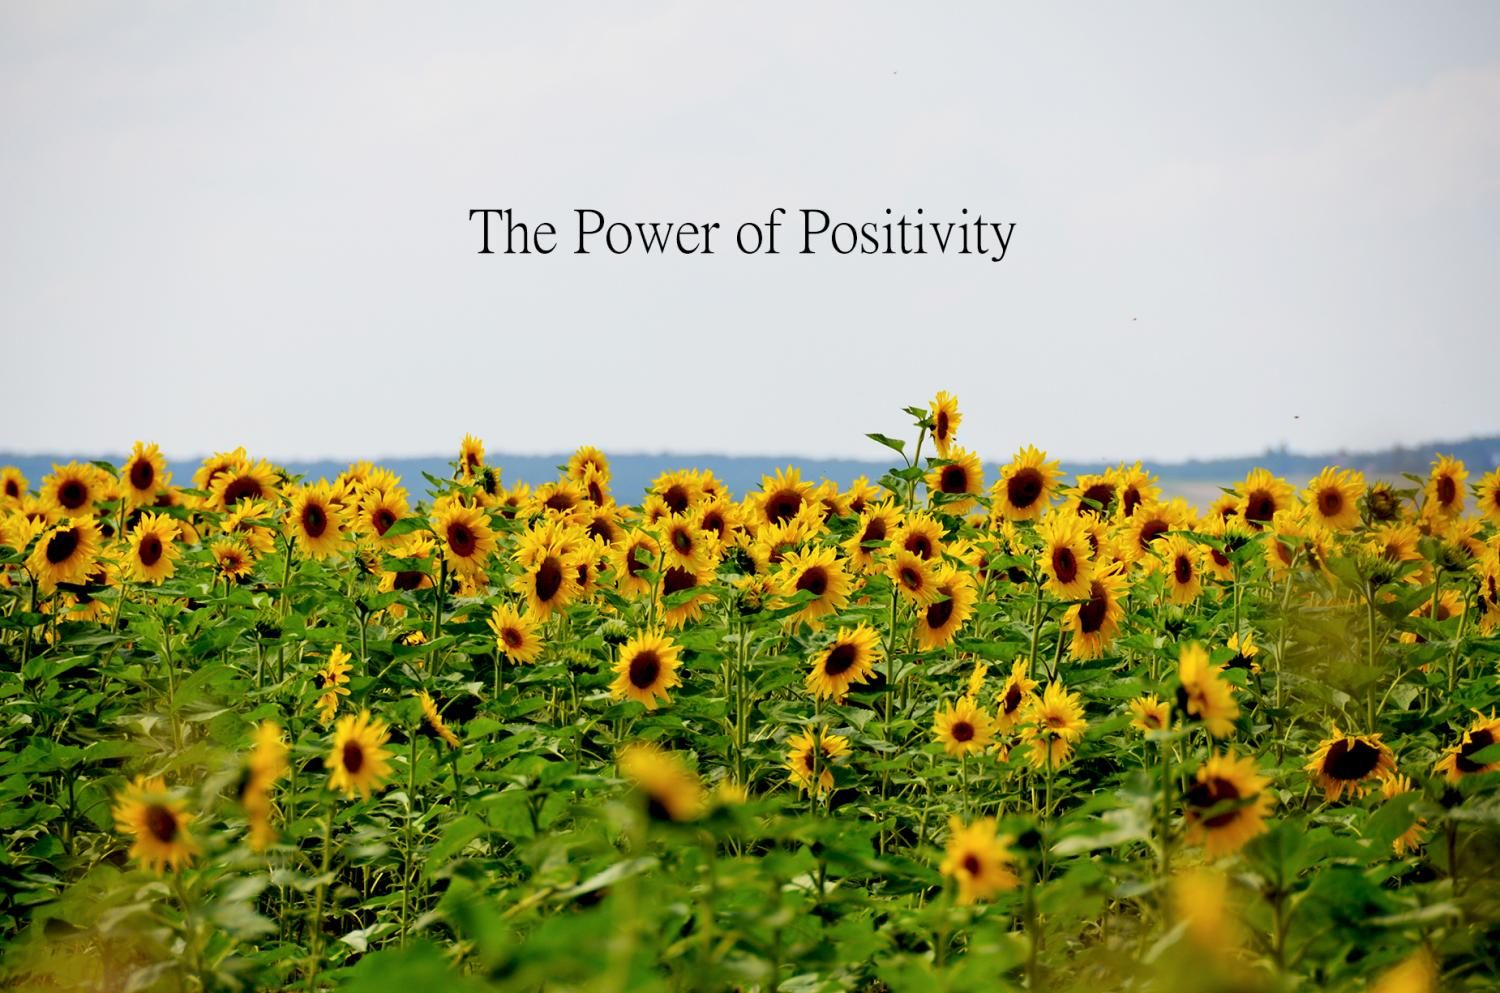 A field of sunflowers symbolizes happiness and positivity.